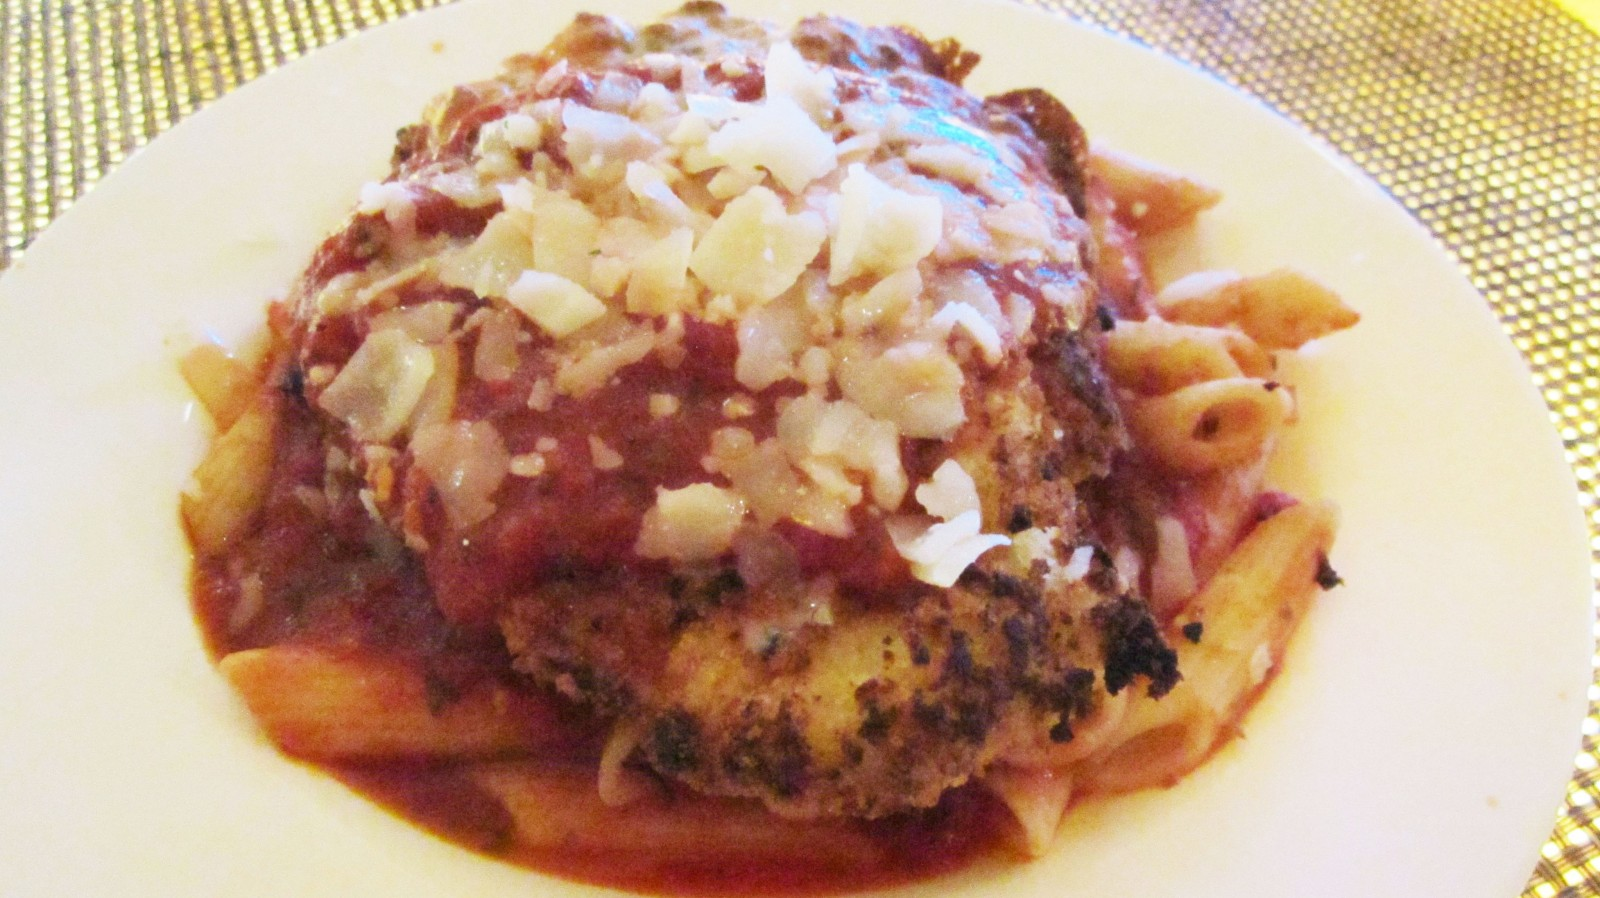 Chicken parmesan arrabbiata Tuesday dinner-at-the-bar special.